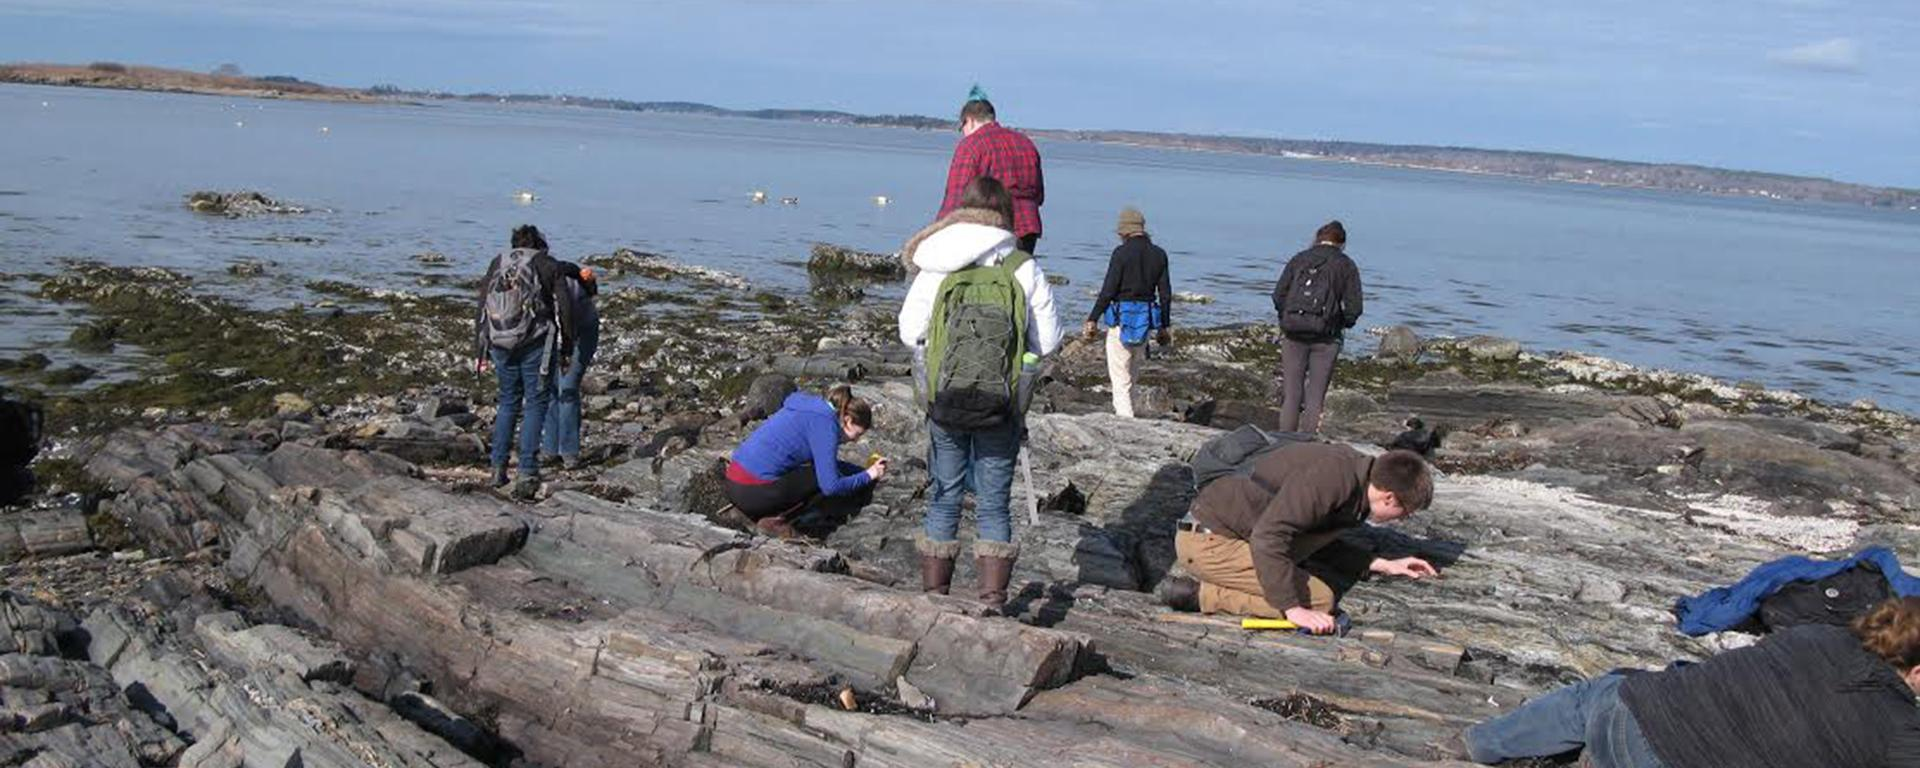 Students studying rock formations near water